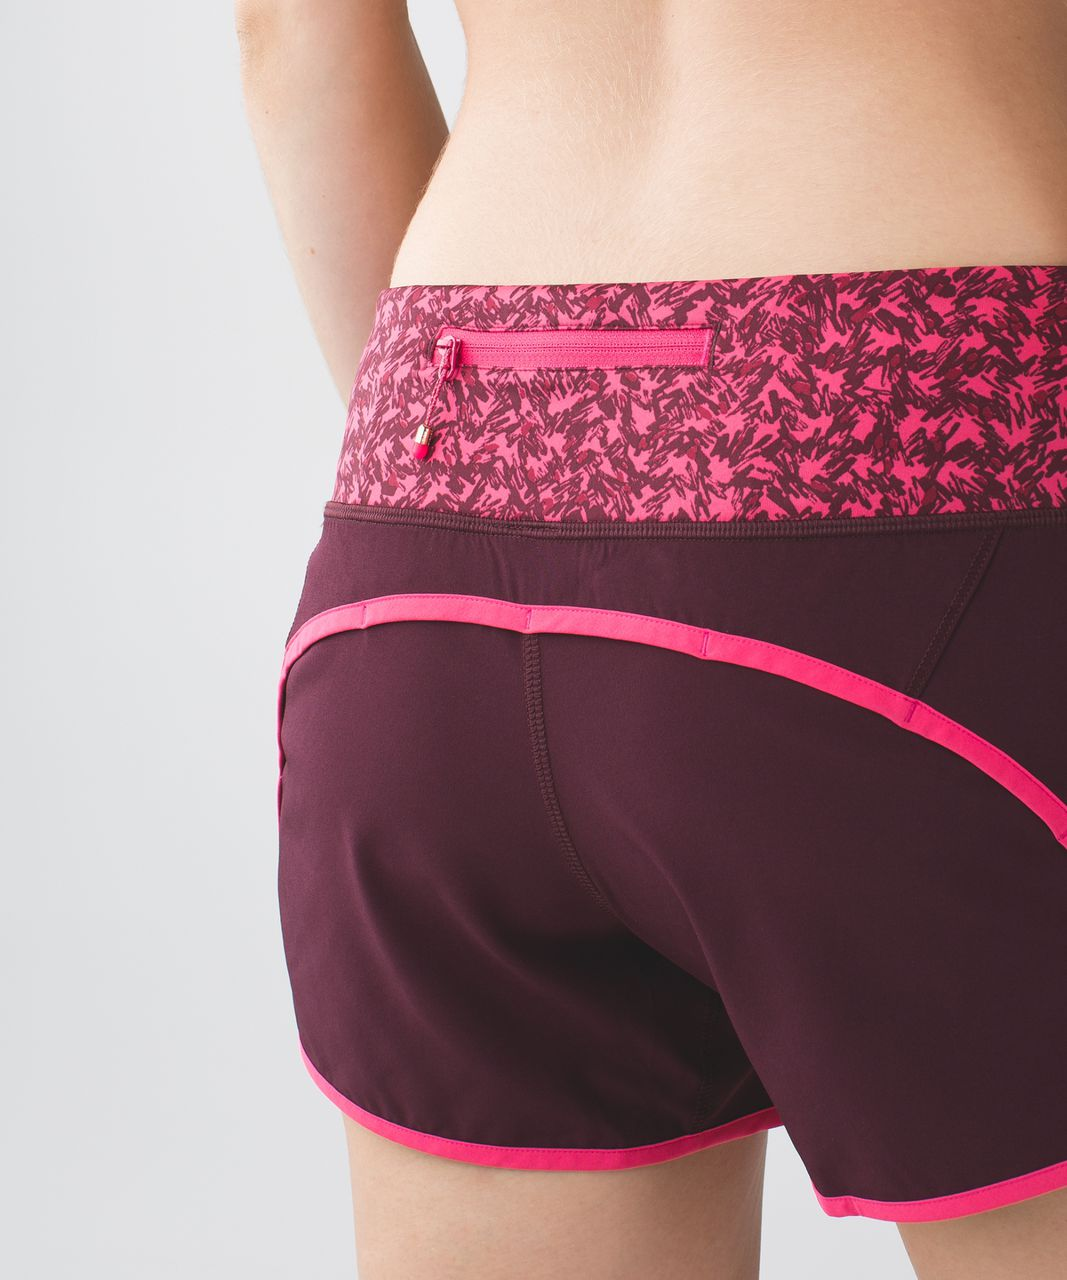 Lululemon Run Times Short *4-way Stretch - Bordeaux Drama / Bon Bon / Mountain Peaks Bon Bon Bordeaux Drama